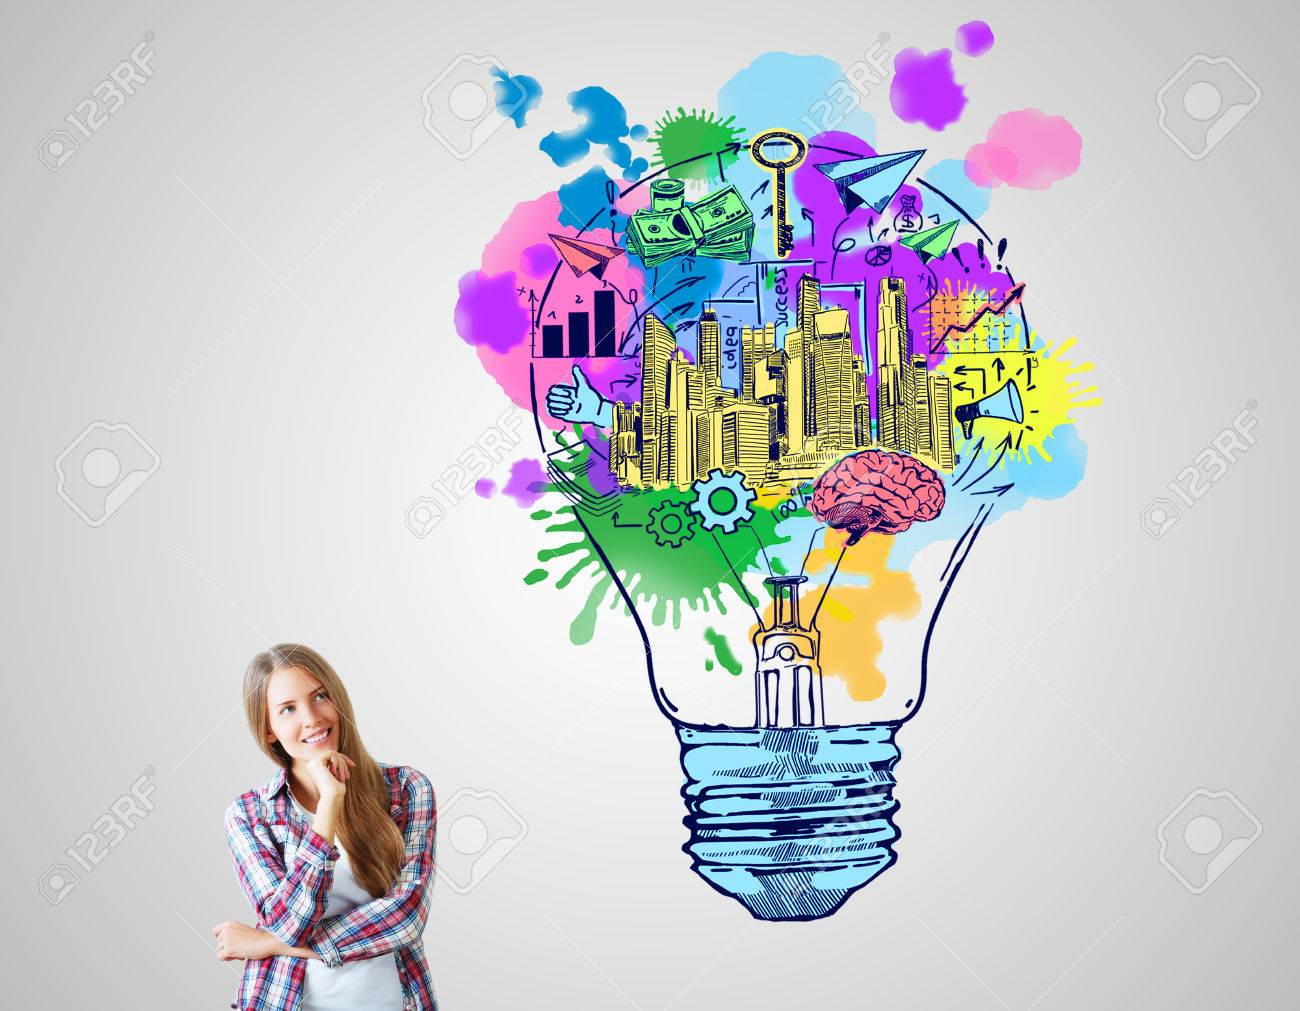 Cheerful european woman with creative sketch on grey background. Business ideas concept - 68507954